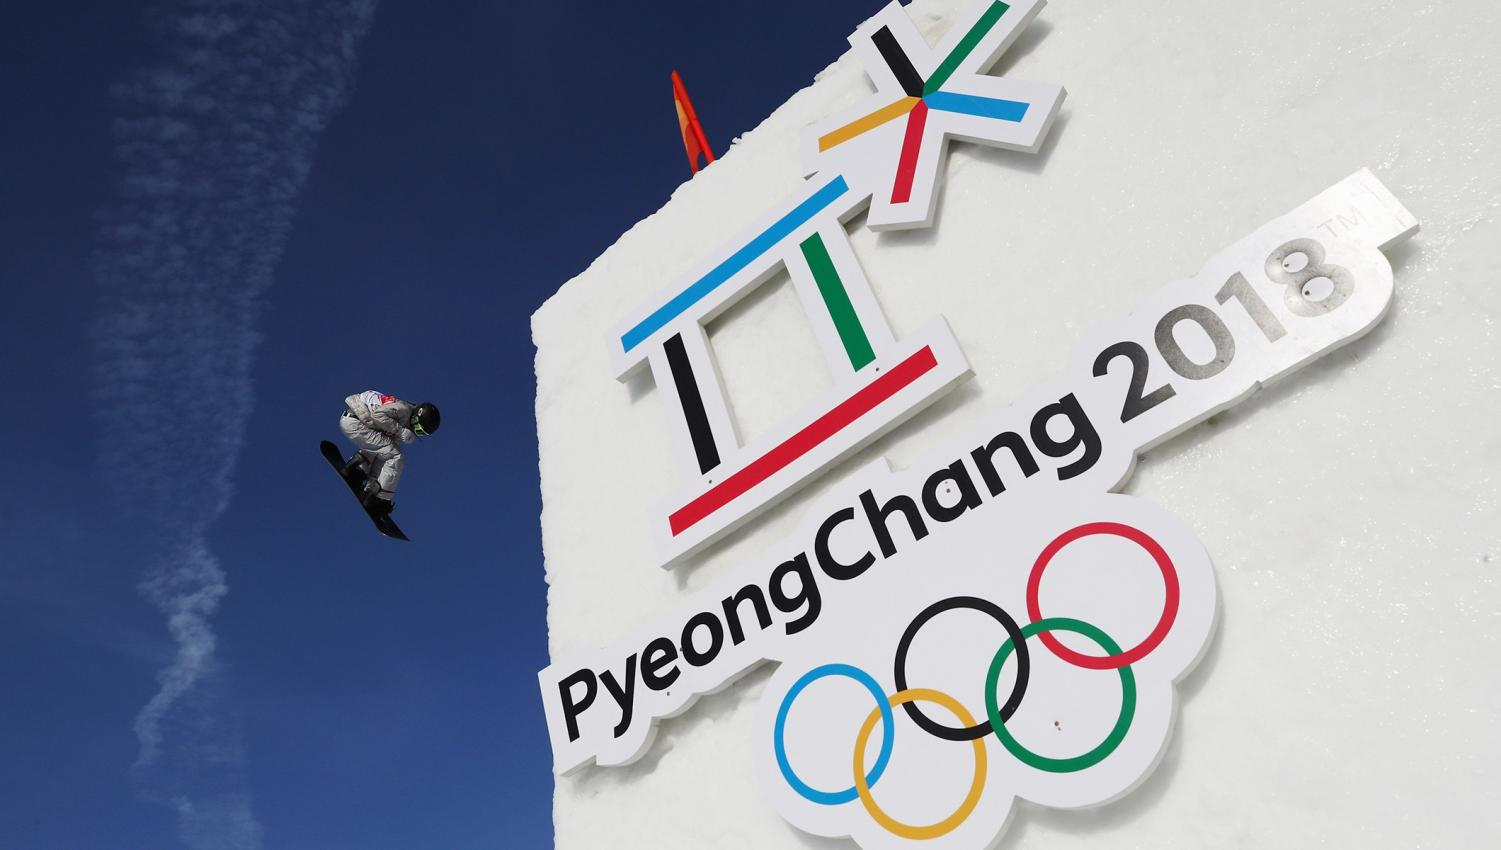 The 2018 Pyeongchang Winter Olympics